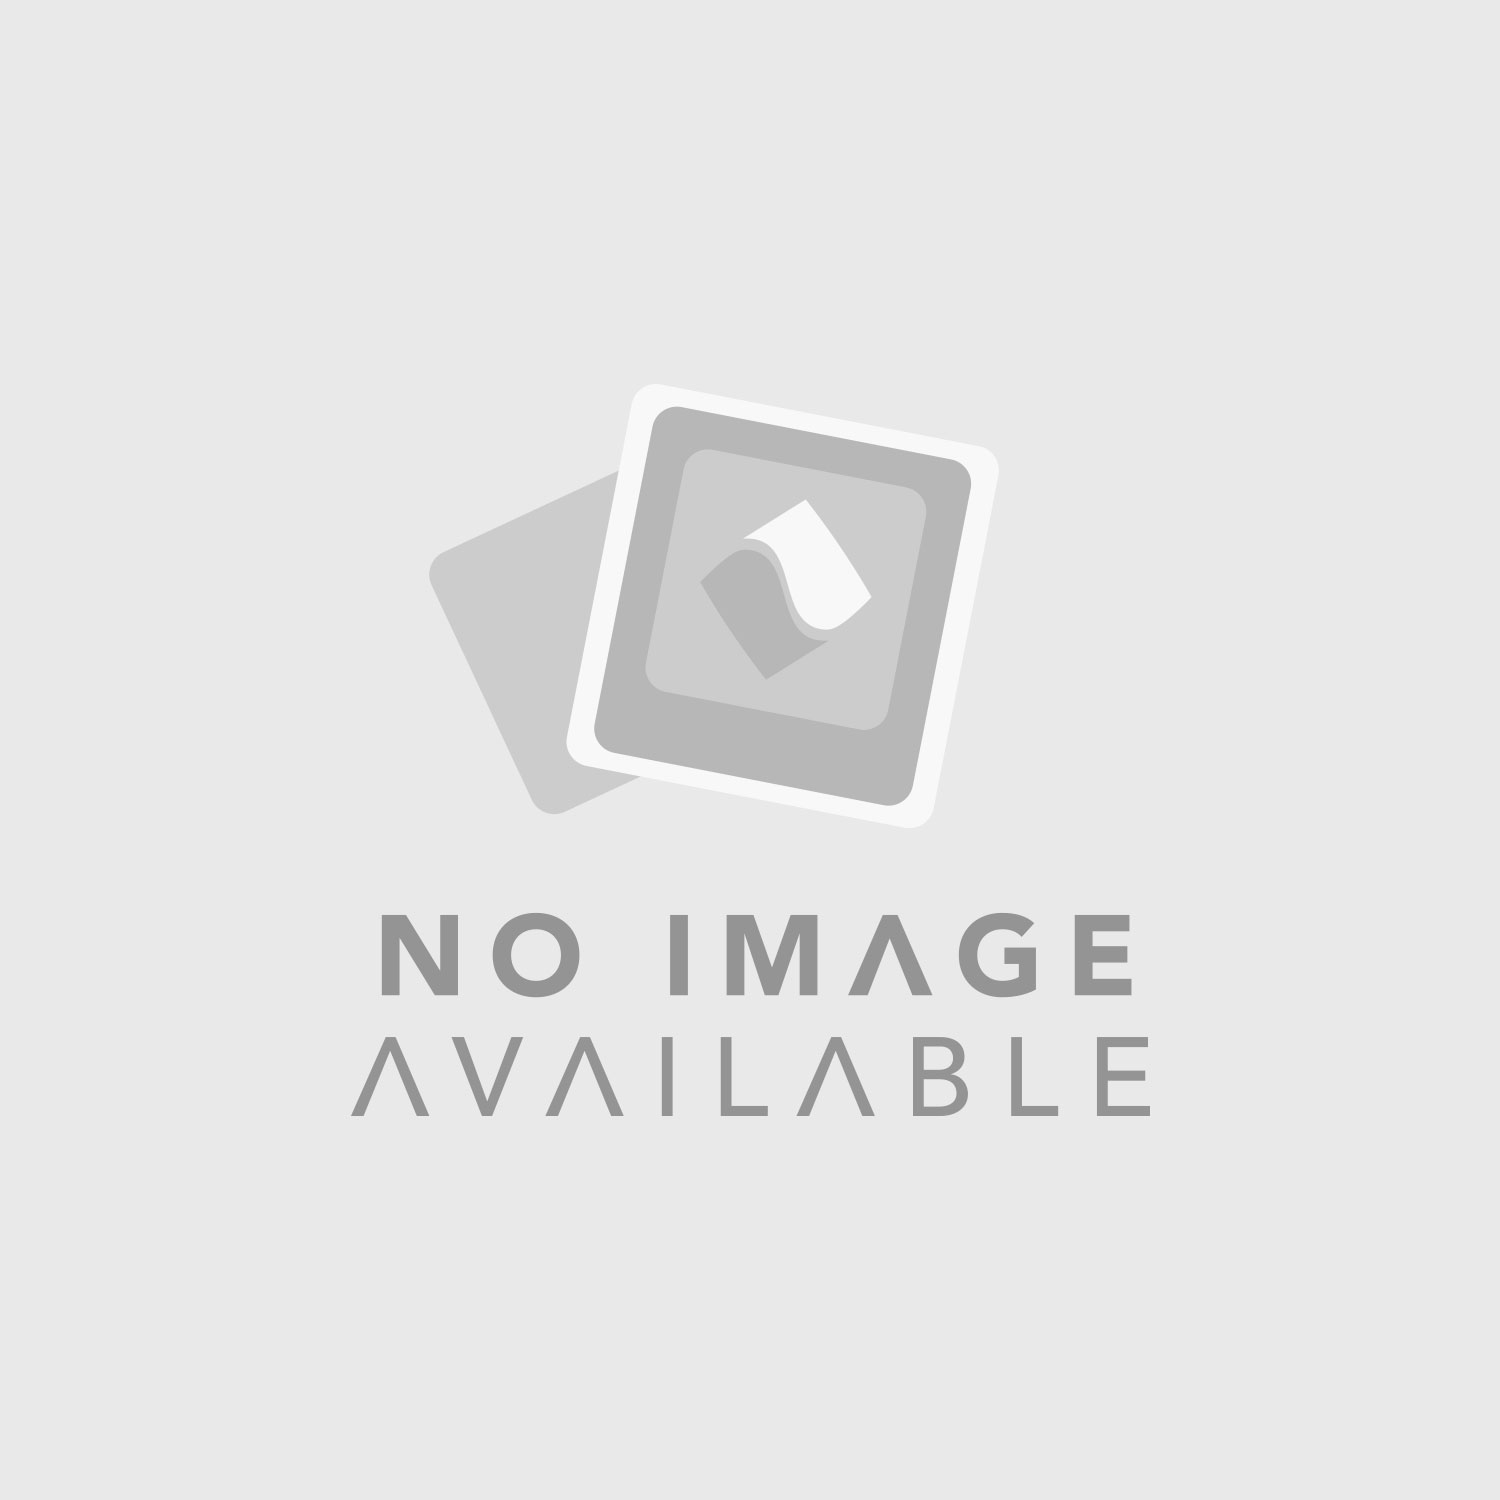 QSC E112 Sat/Sub System Stereo Tops and Subs with 4-Channel Amplifier